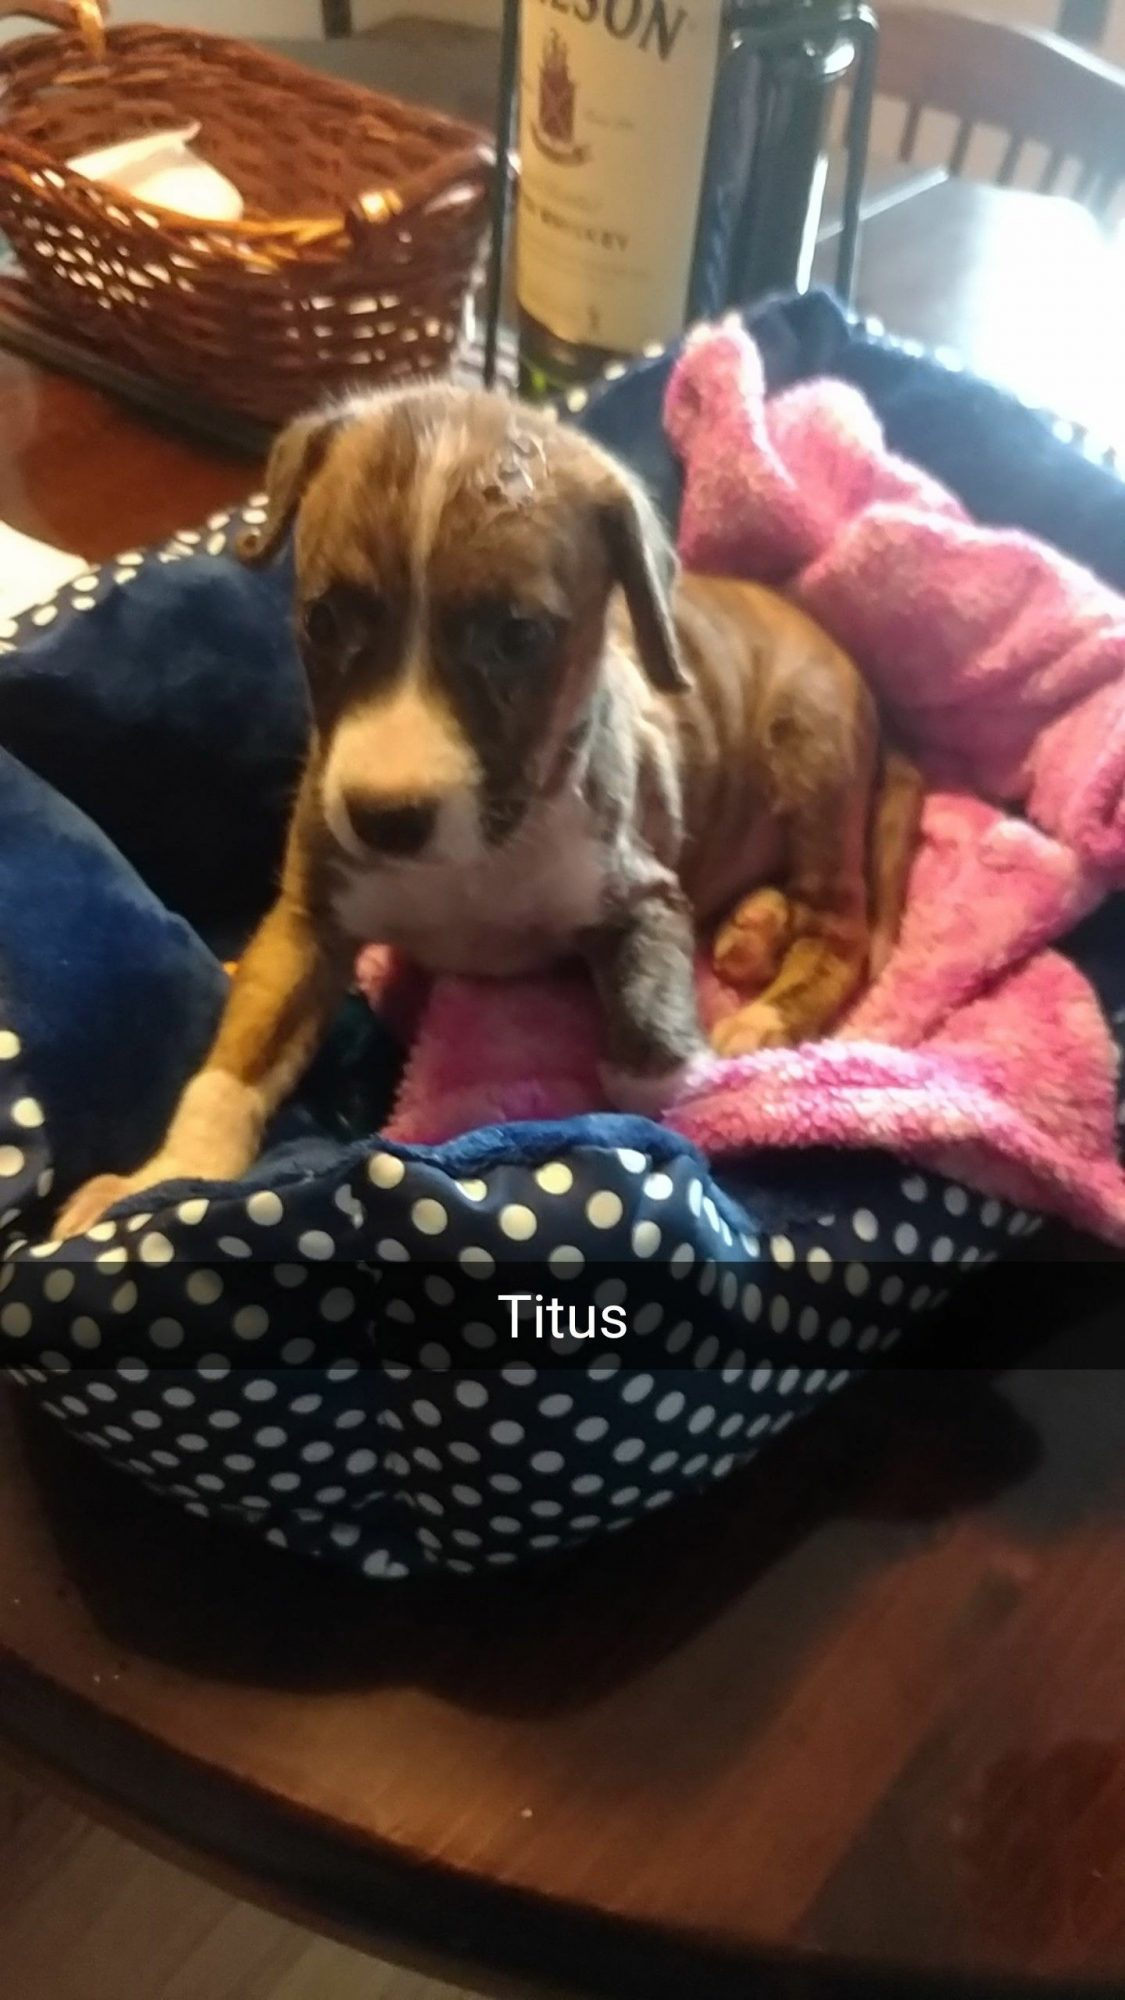 Titus - rescued dog.Credit: City of Newburgh Fire Department